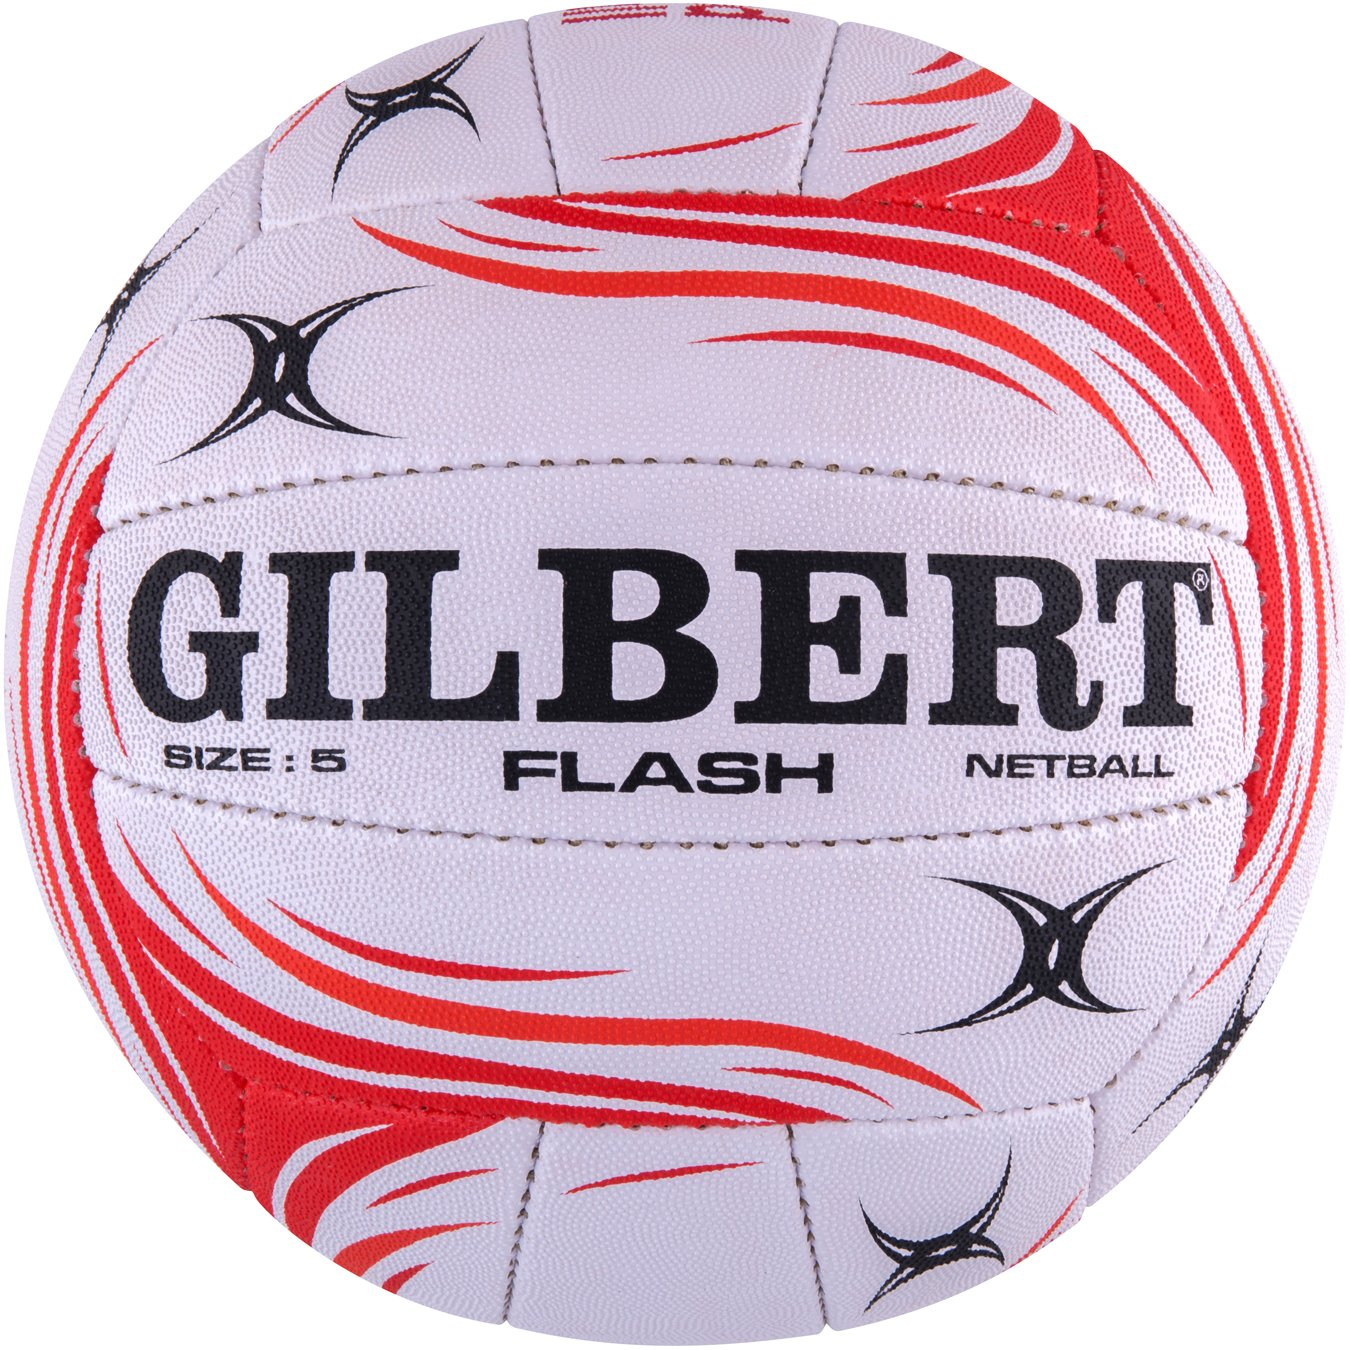 England Flash Official Netball - Red/White Size 5 Grays 86886805